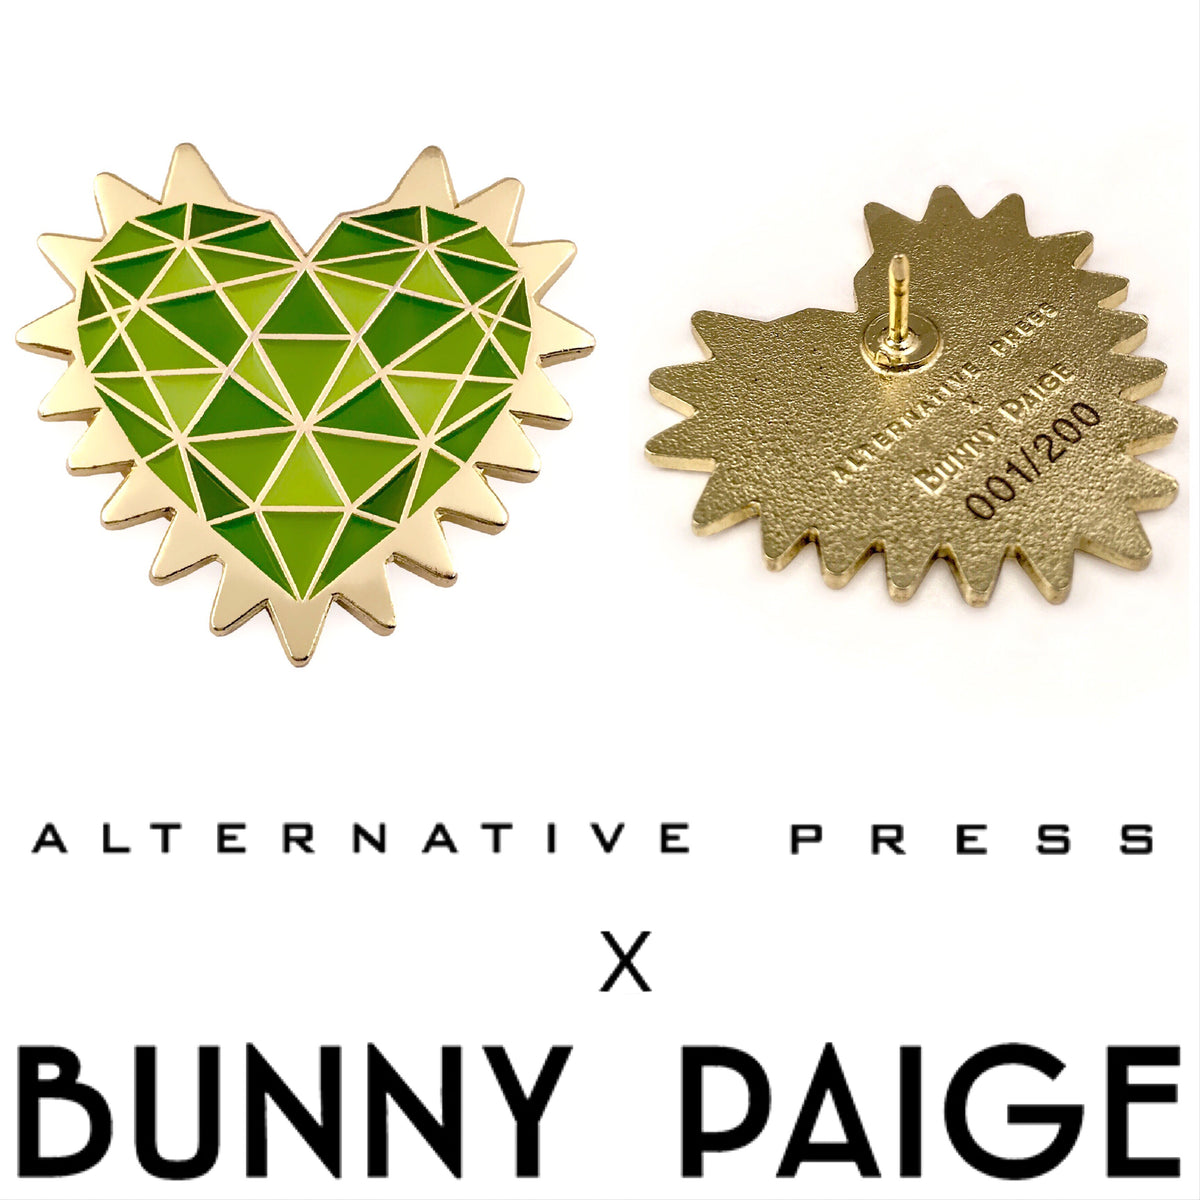 Bunny Paige x Alternative Press Magazine | Custom Spike Heart Enamel Pin Collaboration